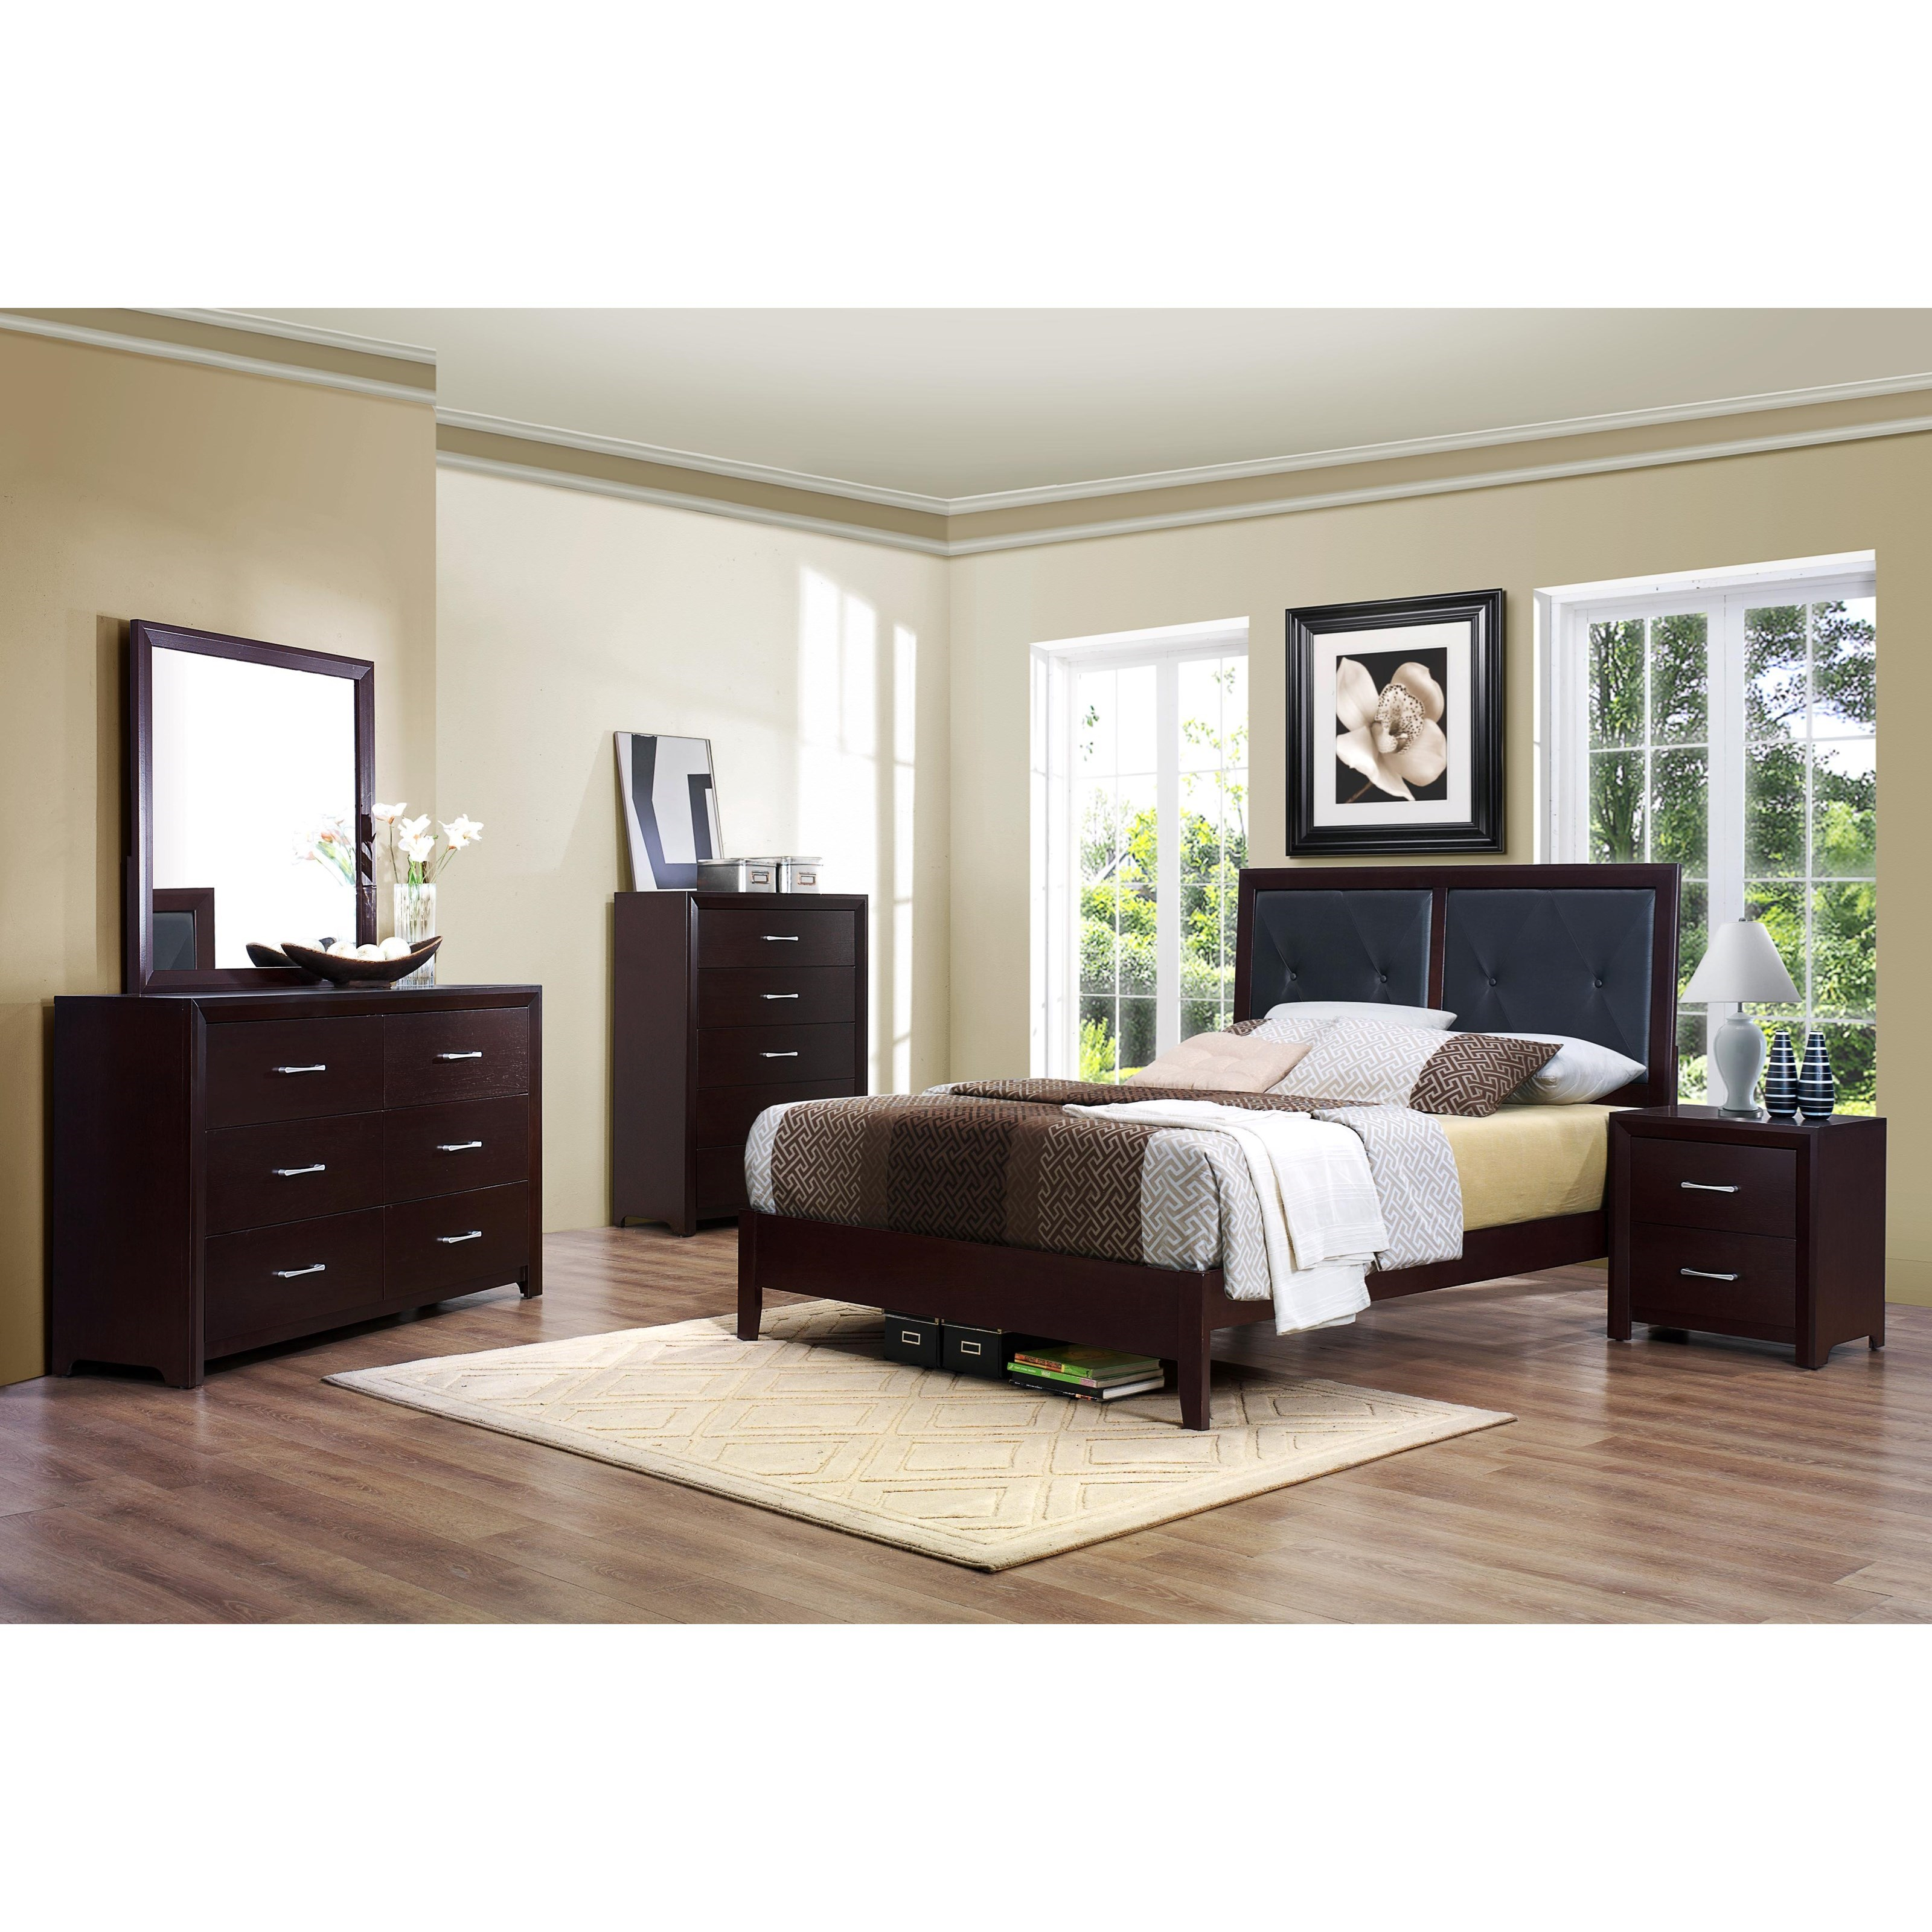 Full Bedroom Group without Chest